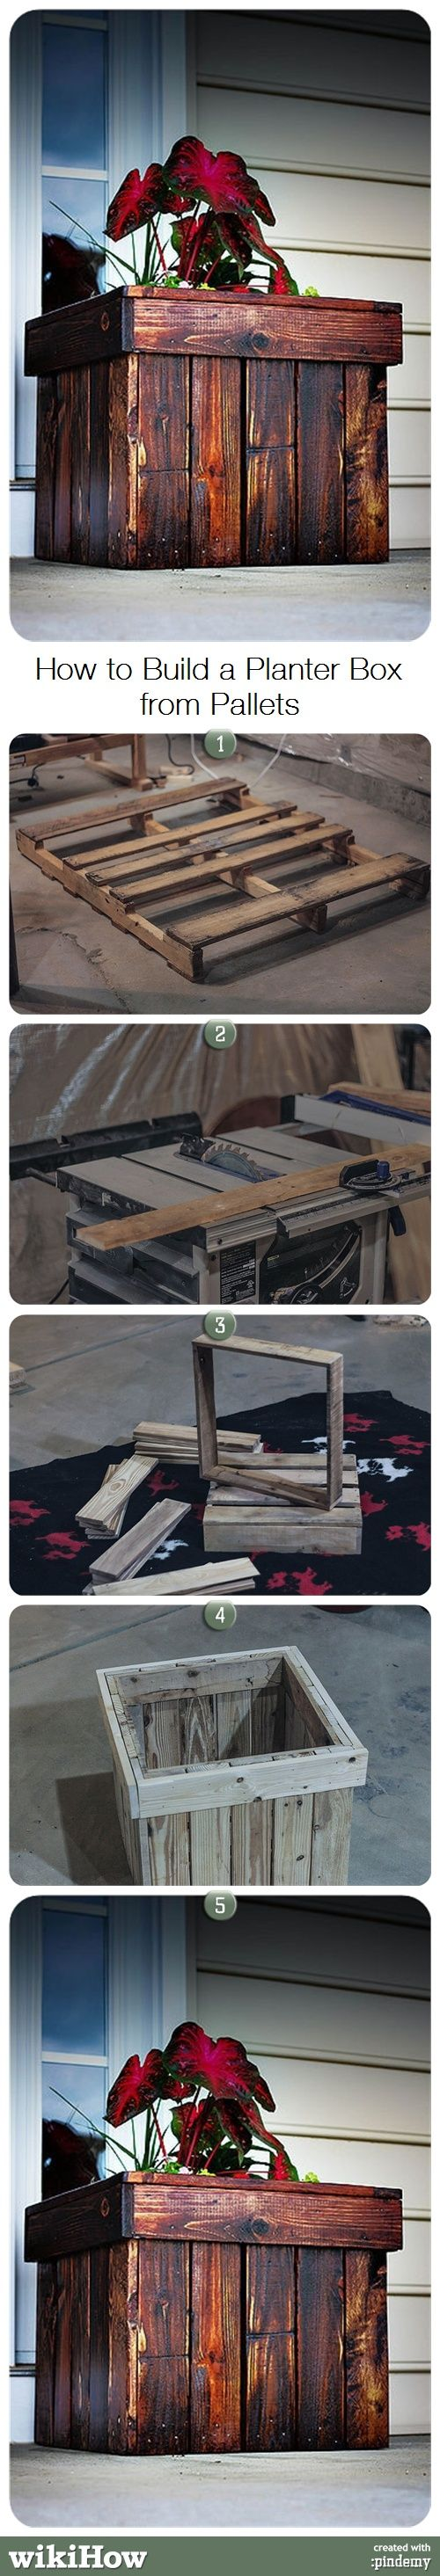 How to Build a Planter Box from Pallets